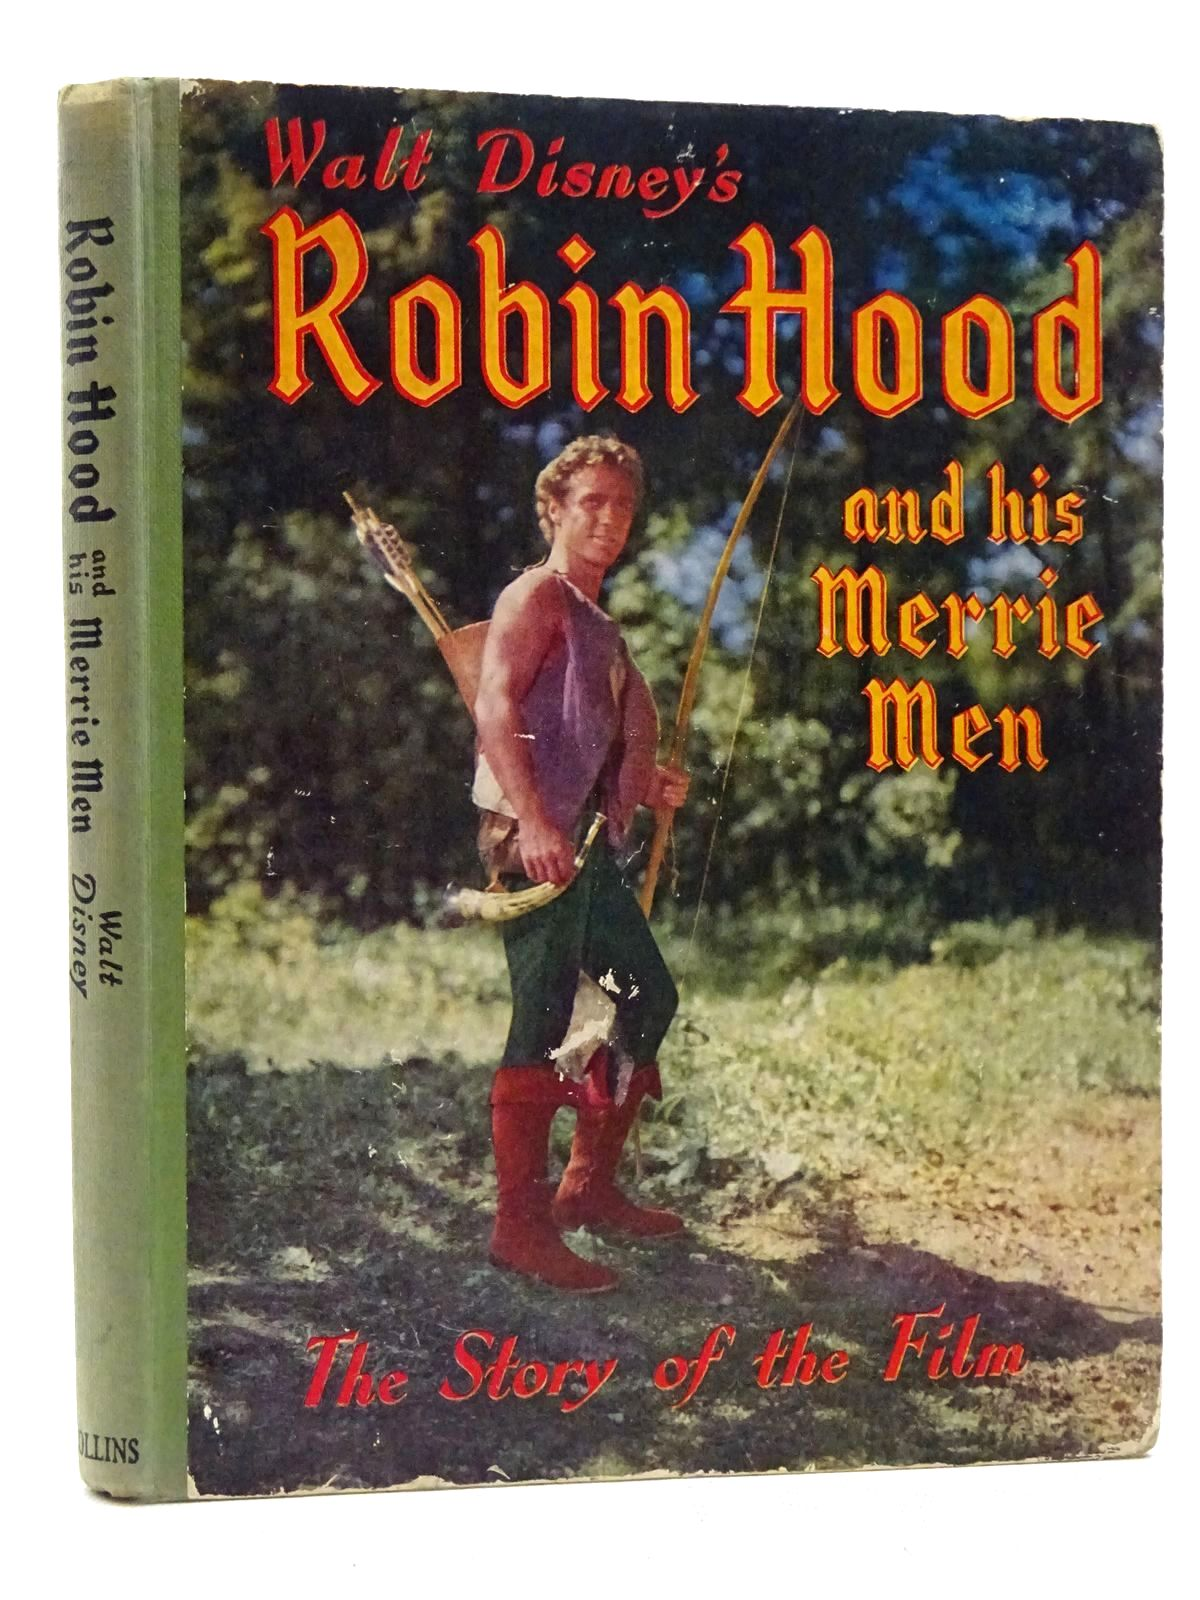 Photo of WALT DISNEY'S ROBIN HOOD AND HIS MERRIE MEN written by Disney, Walt illustrated by Disney, Walt published by Collins (STOCK CODE: 2125274)  for sale by Stella & Rose's Books